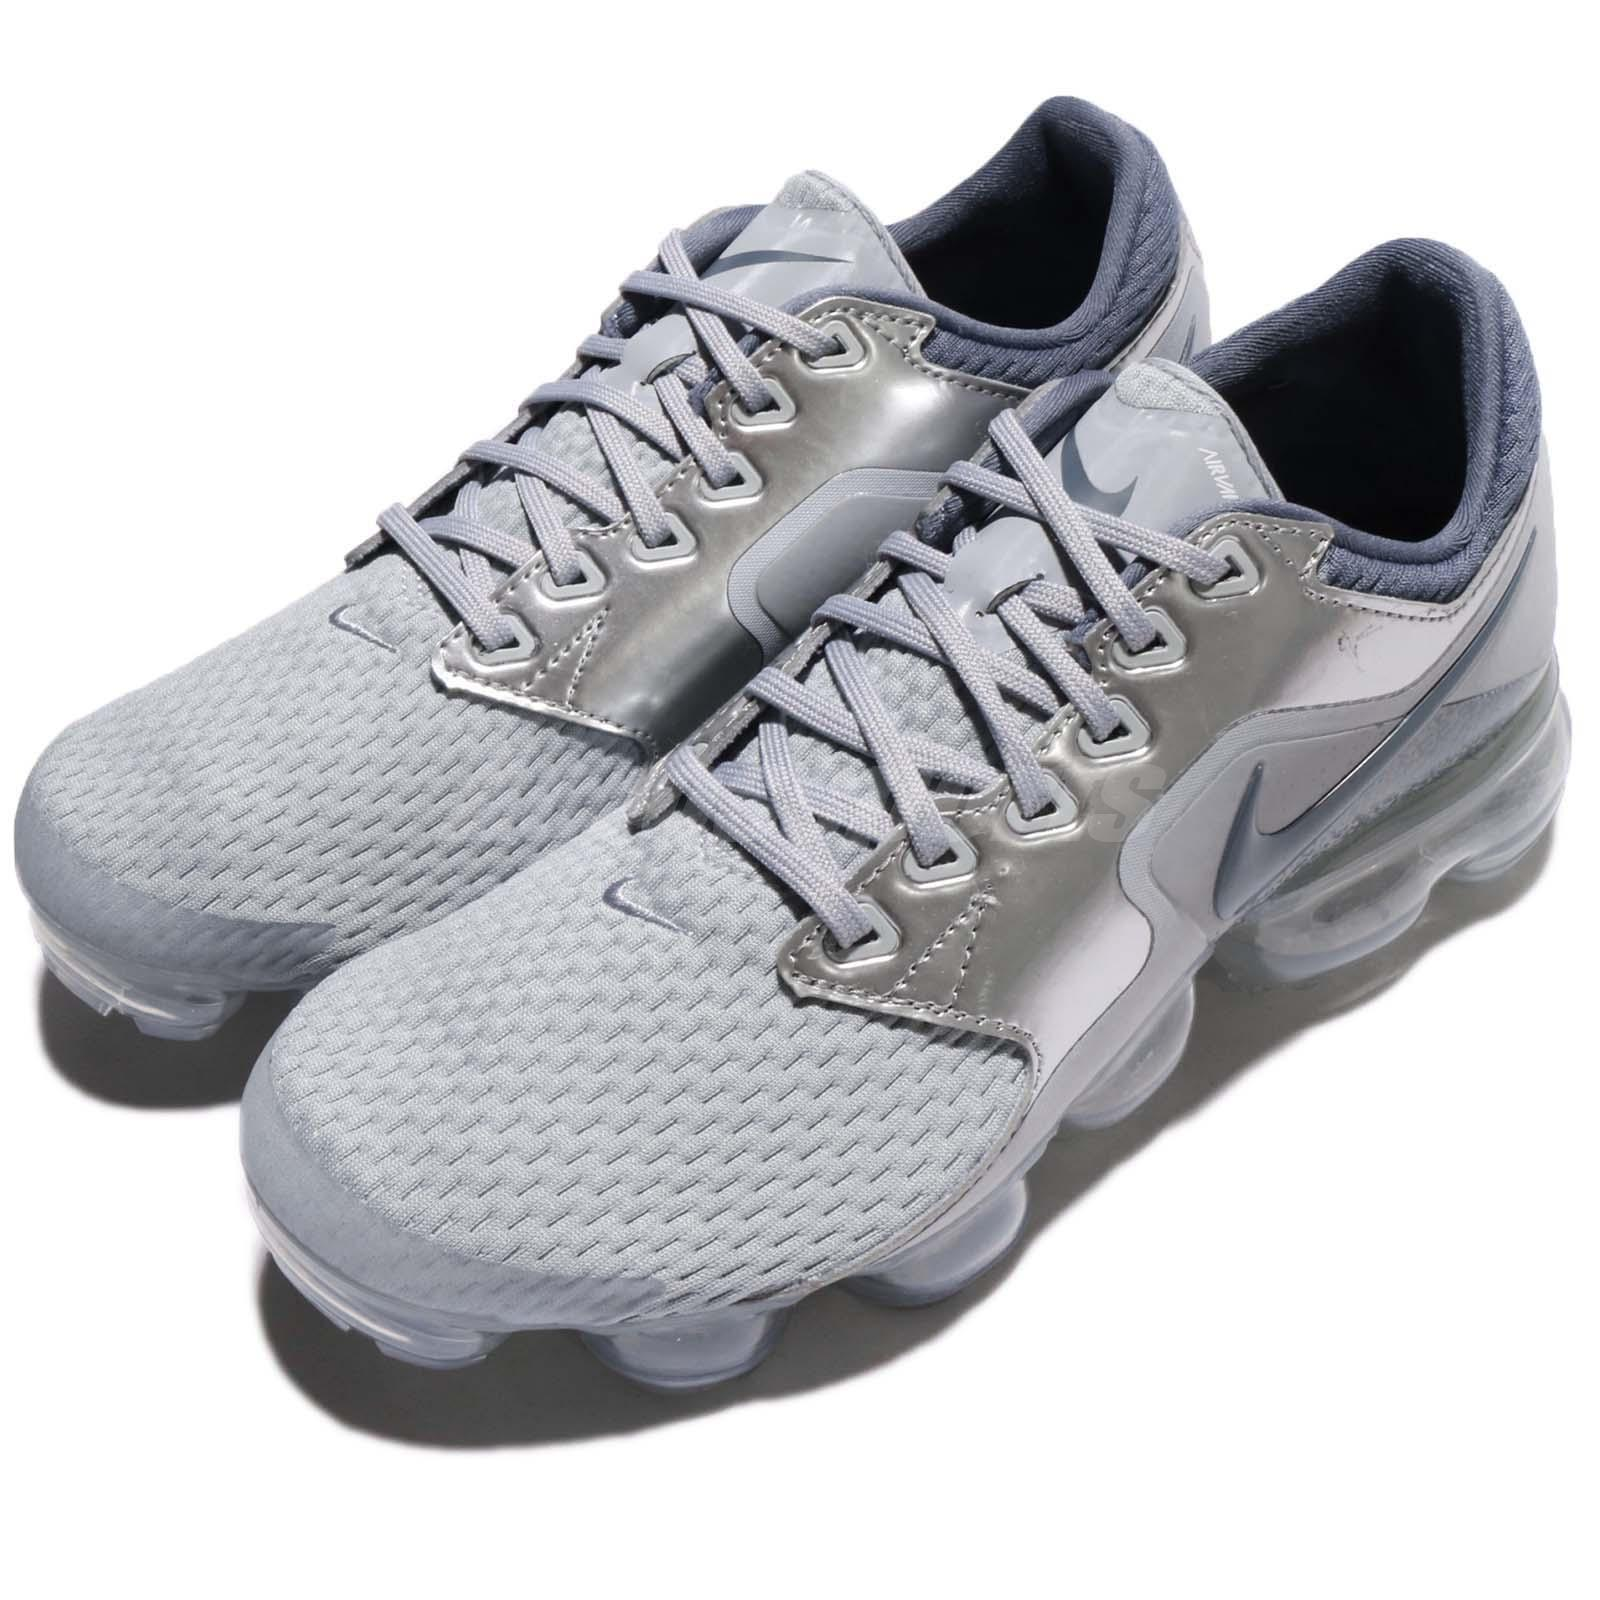 buy popular 89568 b40a7 Details about Nike Air Vapormax GS Wolf Grey Light Carbon Kids Women  Running Shoes 917963-006